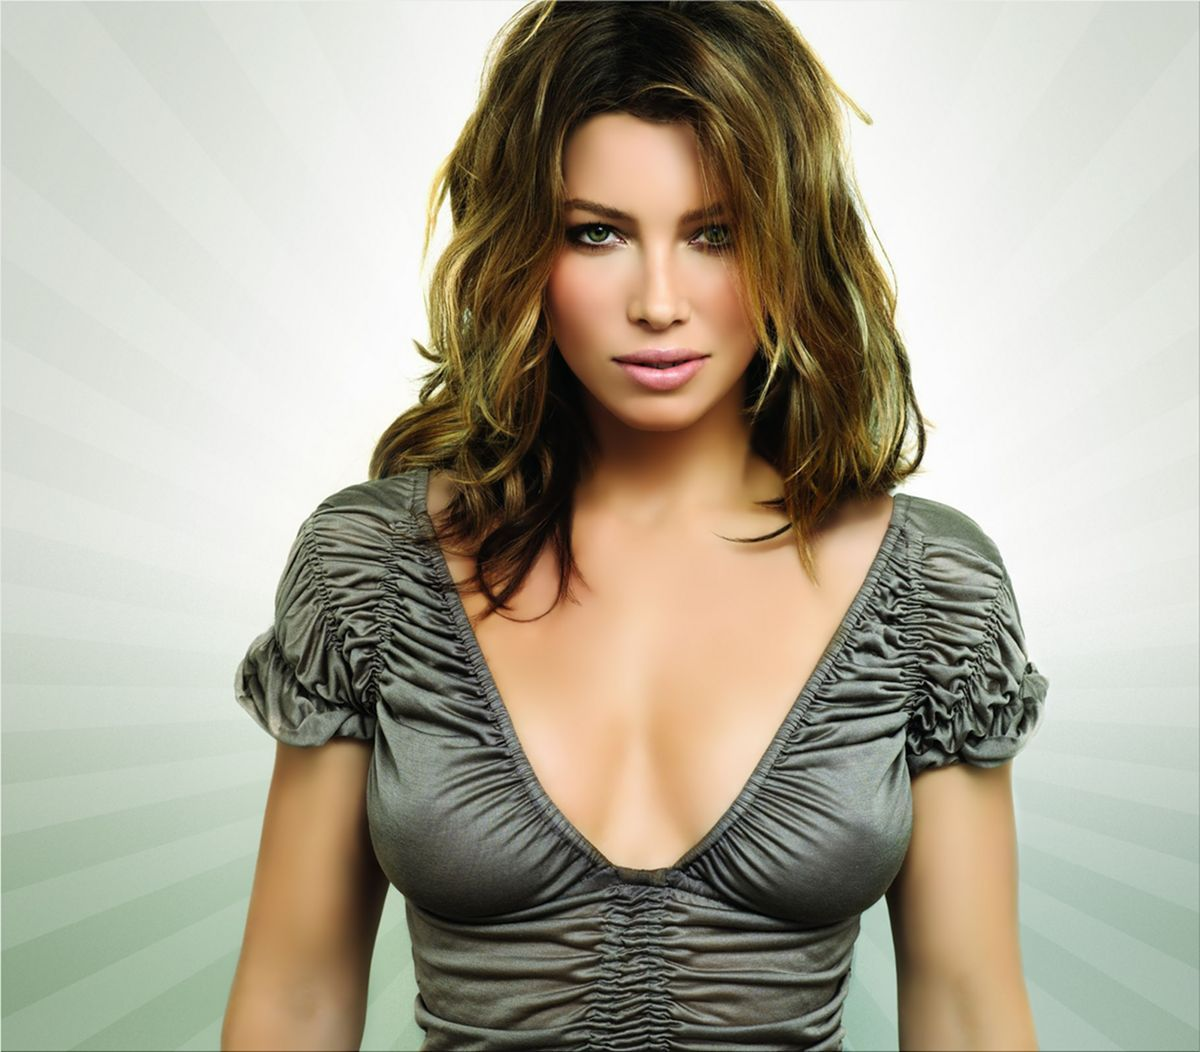 Cleavage Jessica Biel nudes (81 foto and video), Sexy, Hot, Twitter, see through 2017